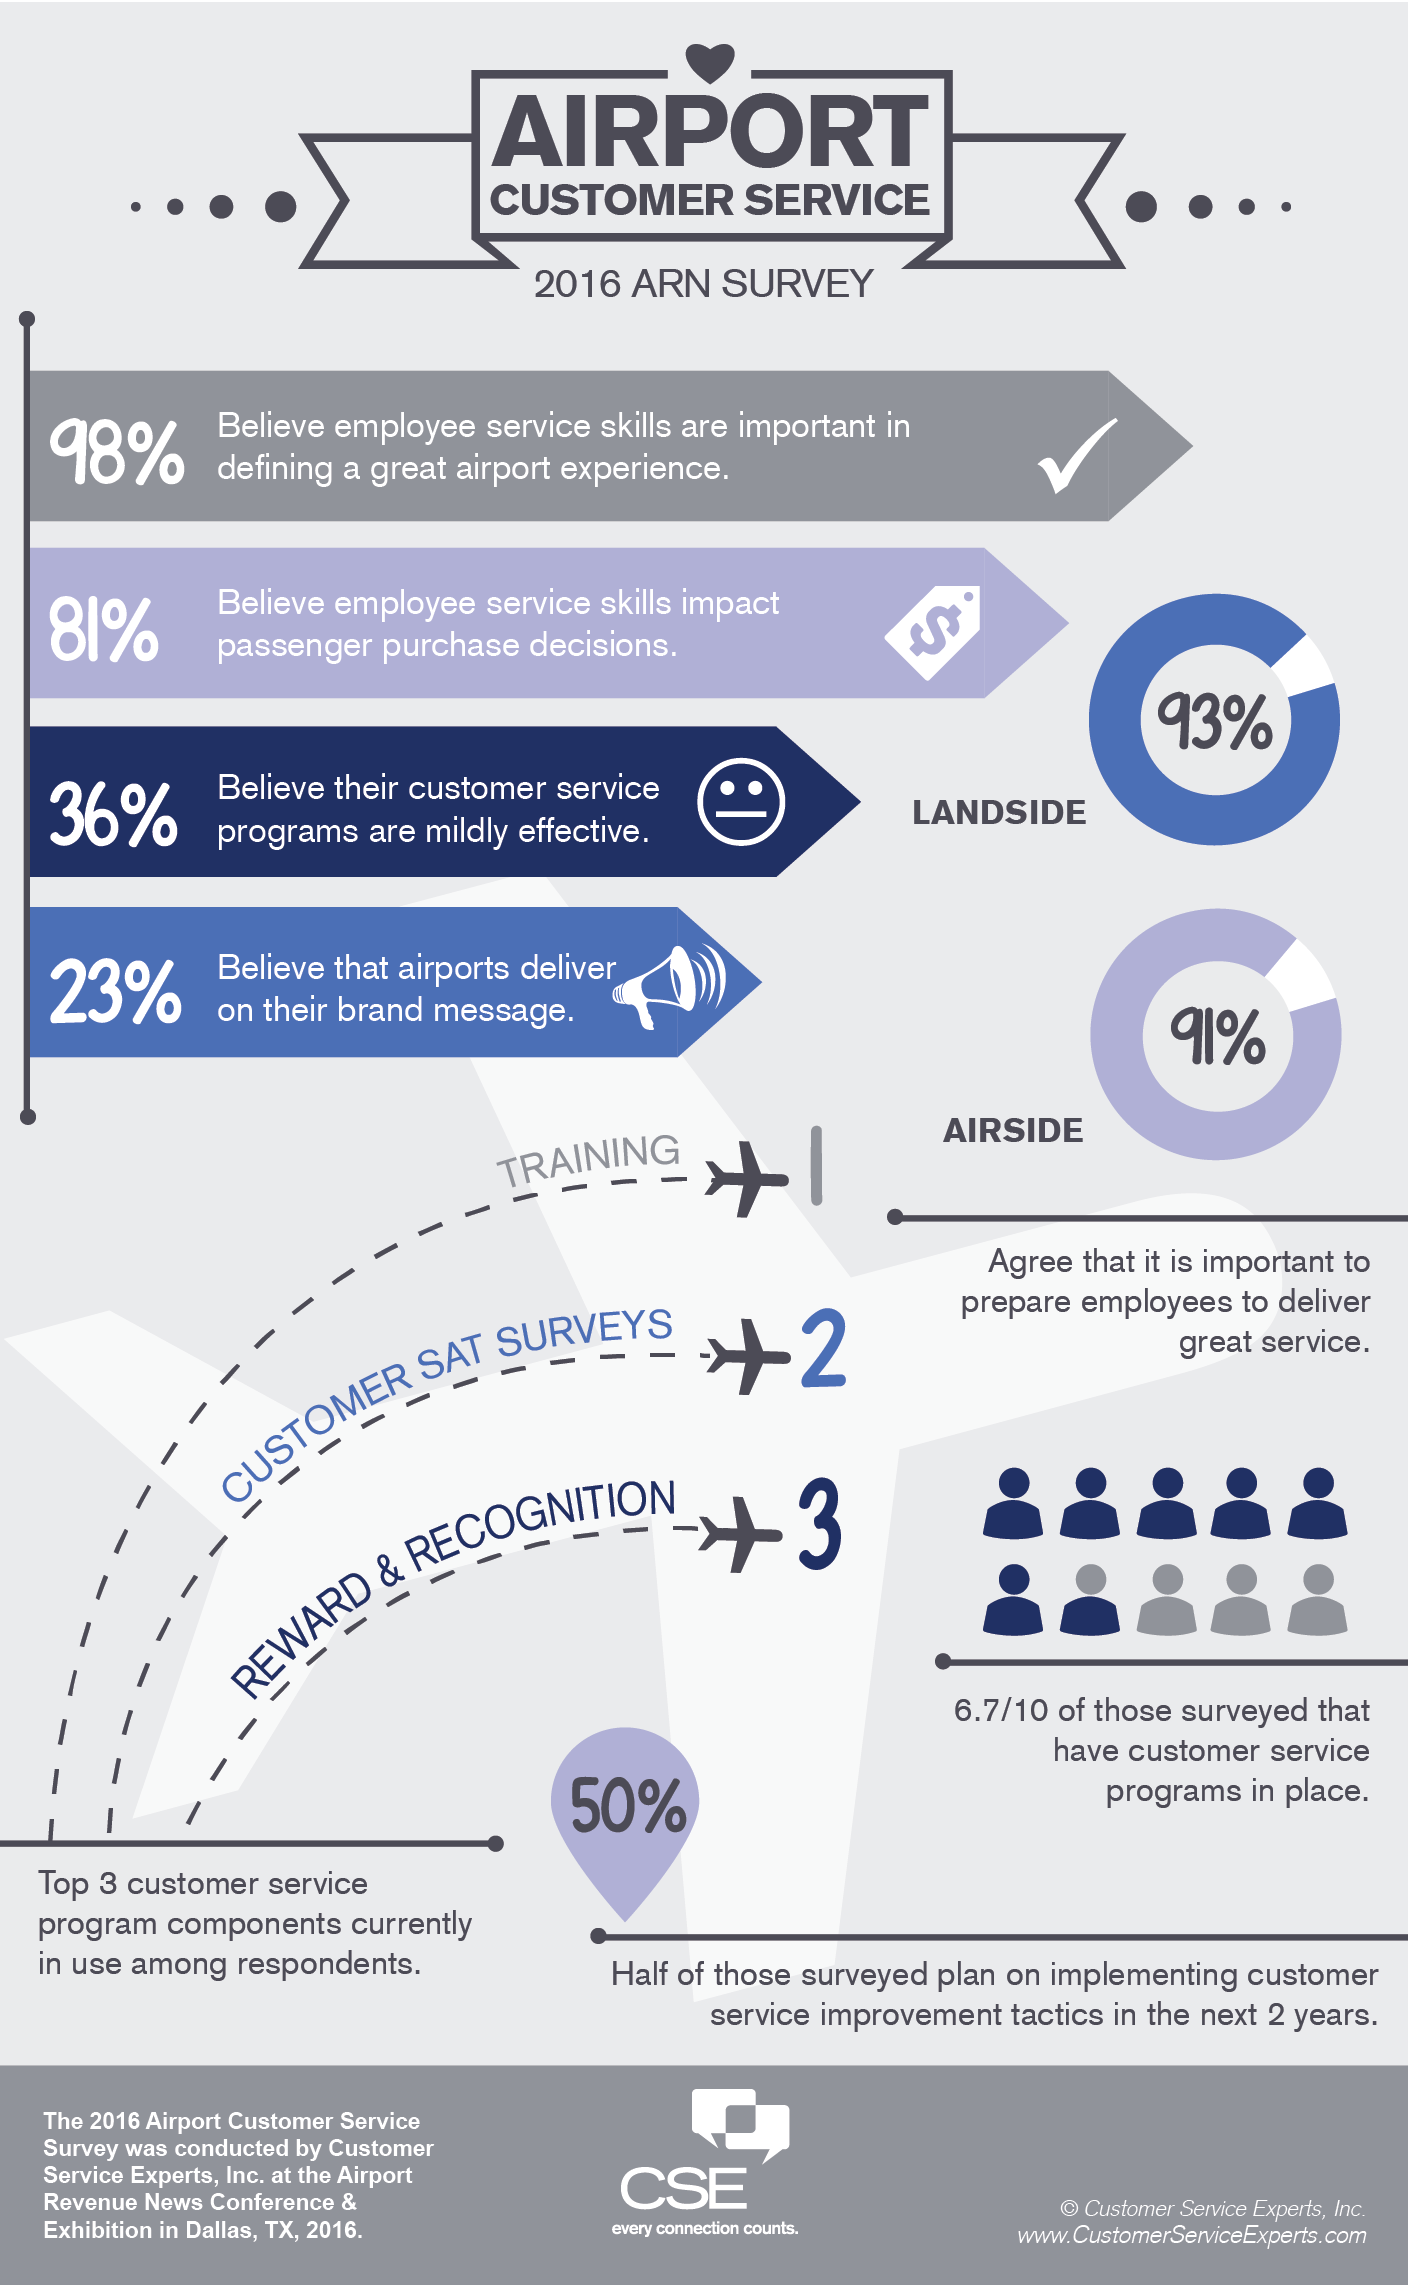 Airport_Customer_Service_Survey_Results_ARN_2016_WEB-01.png